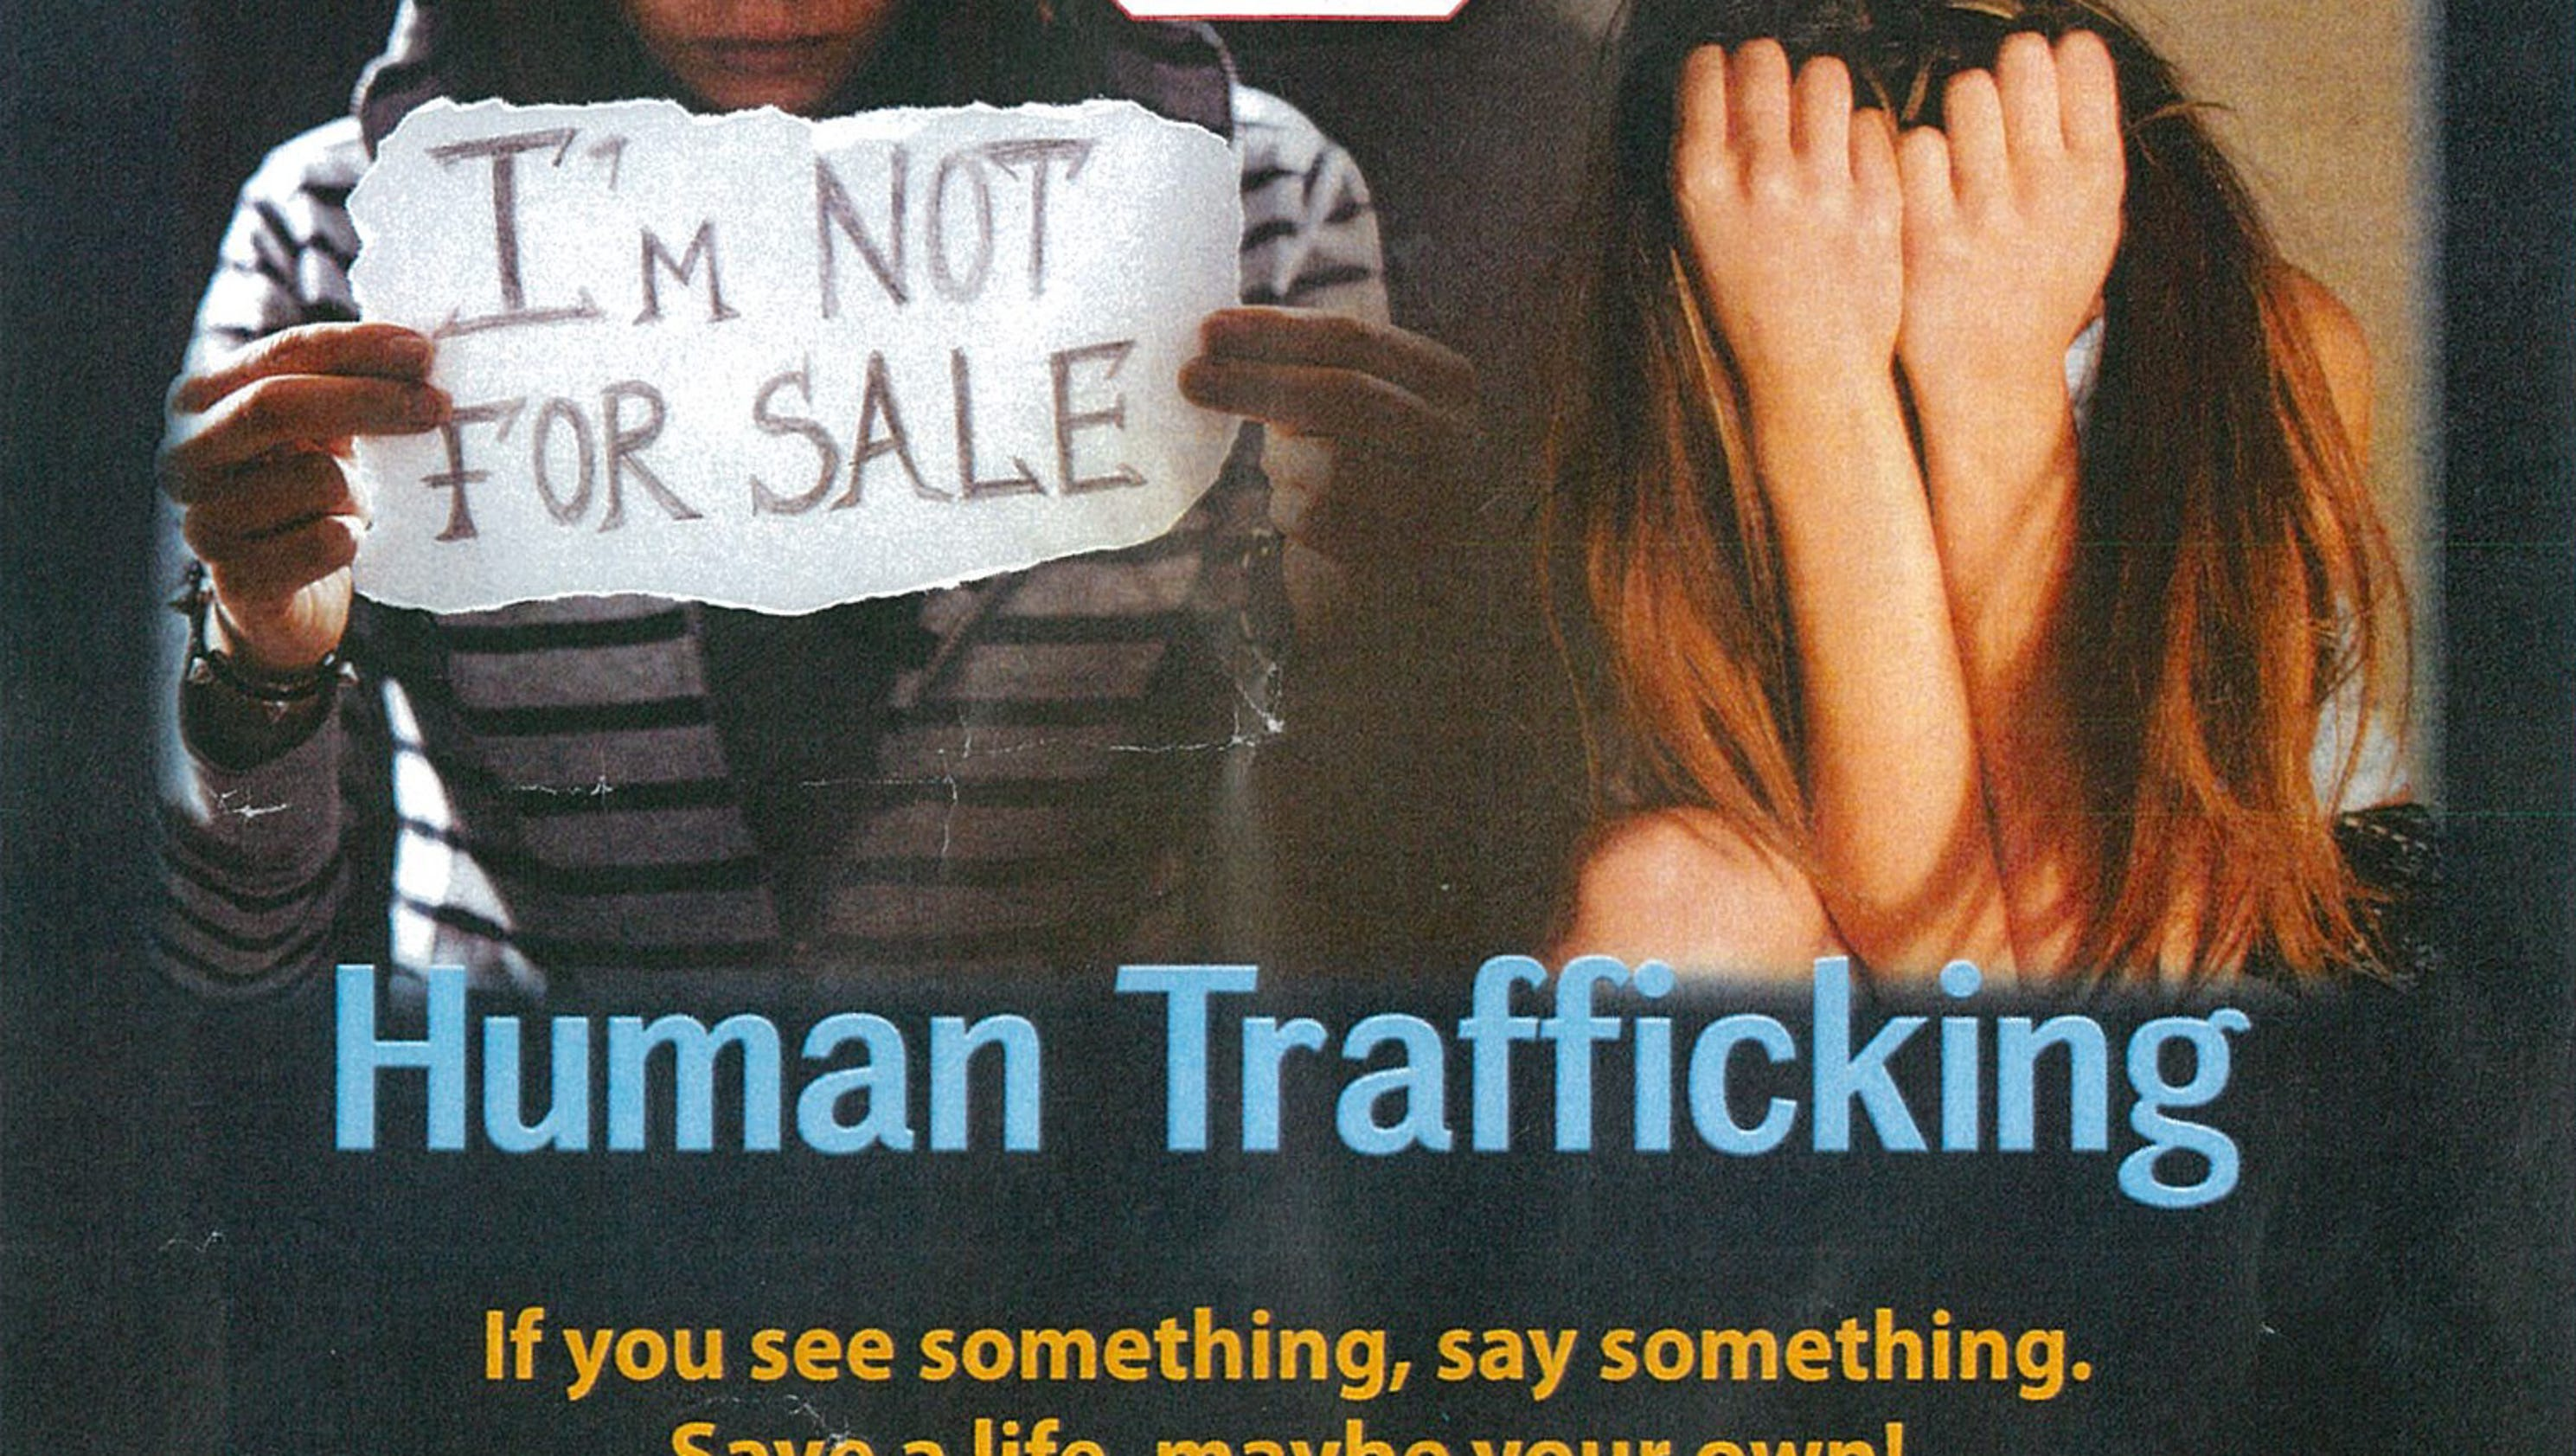 Despite good intentions, Delaware slow to address human trafficking